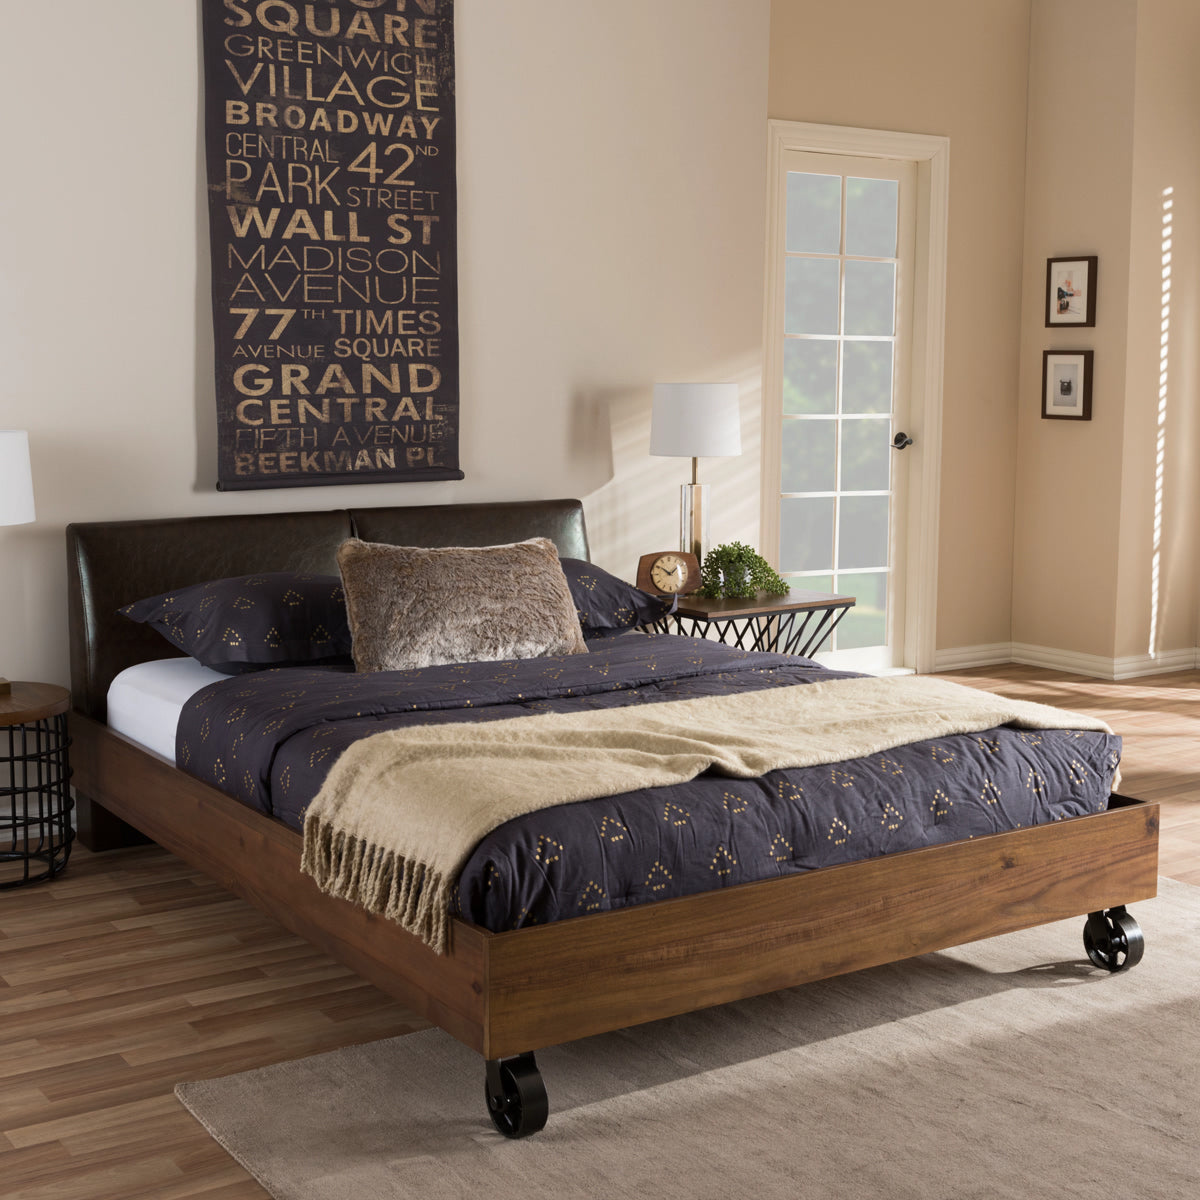 Baxton Studio Brooke Rustic Industrial Walnut Wood Distressed Faux Leather Dark Bronze Metal Full Size Platform Bed Baxton Studio-Full Bed-Minimal And Modern - 1